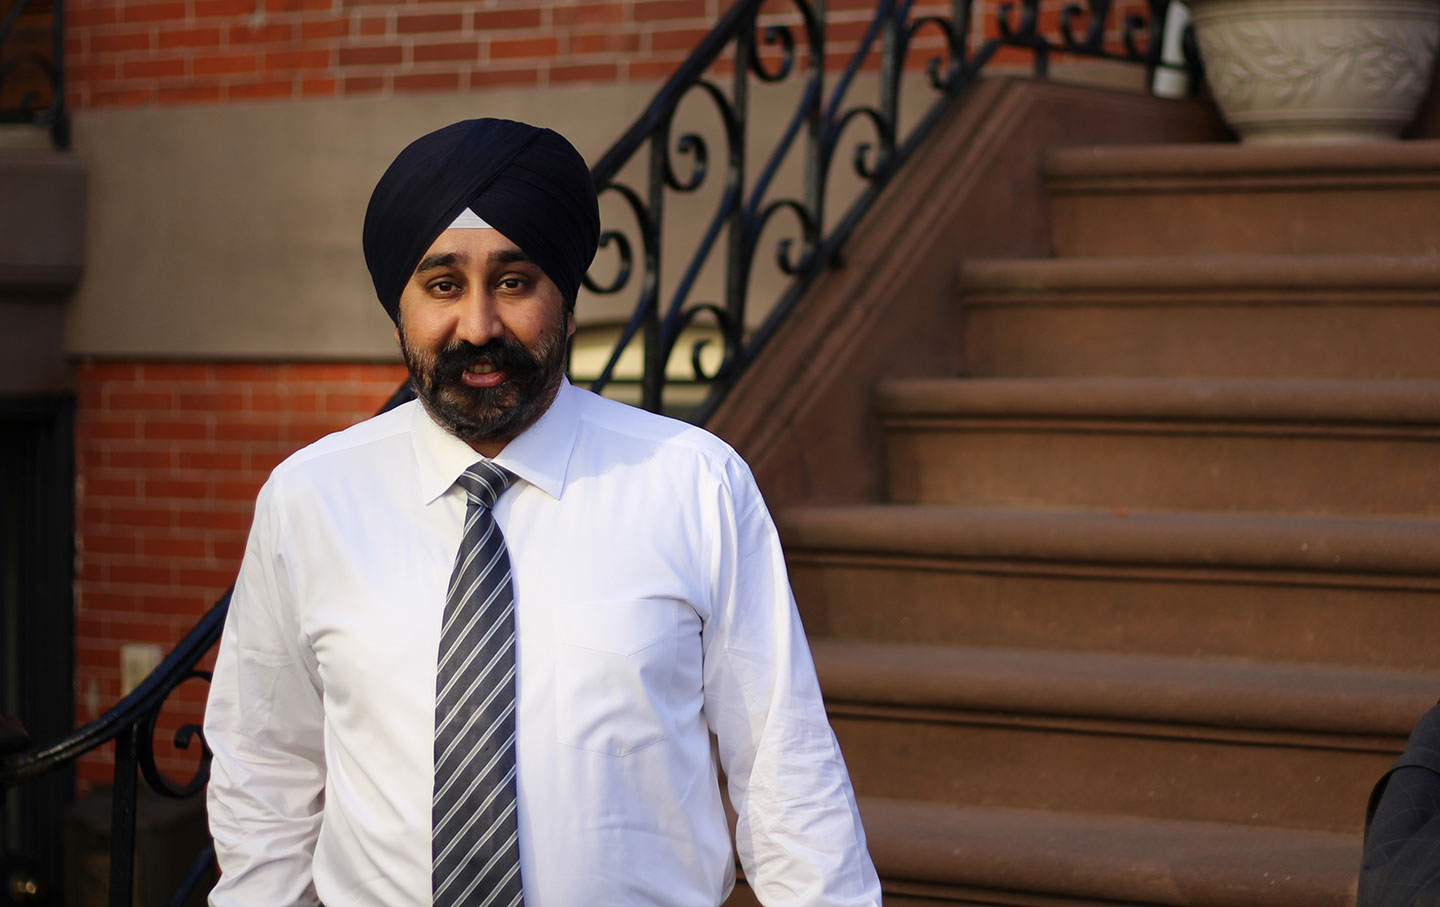 After wild 6-way race, NJ's first Sikh mayor humbled by win